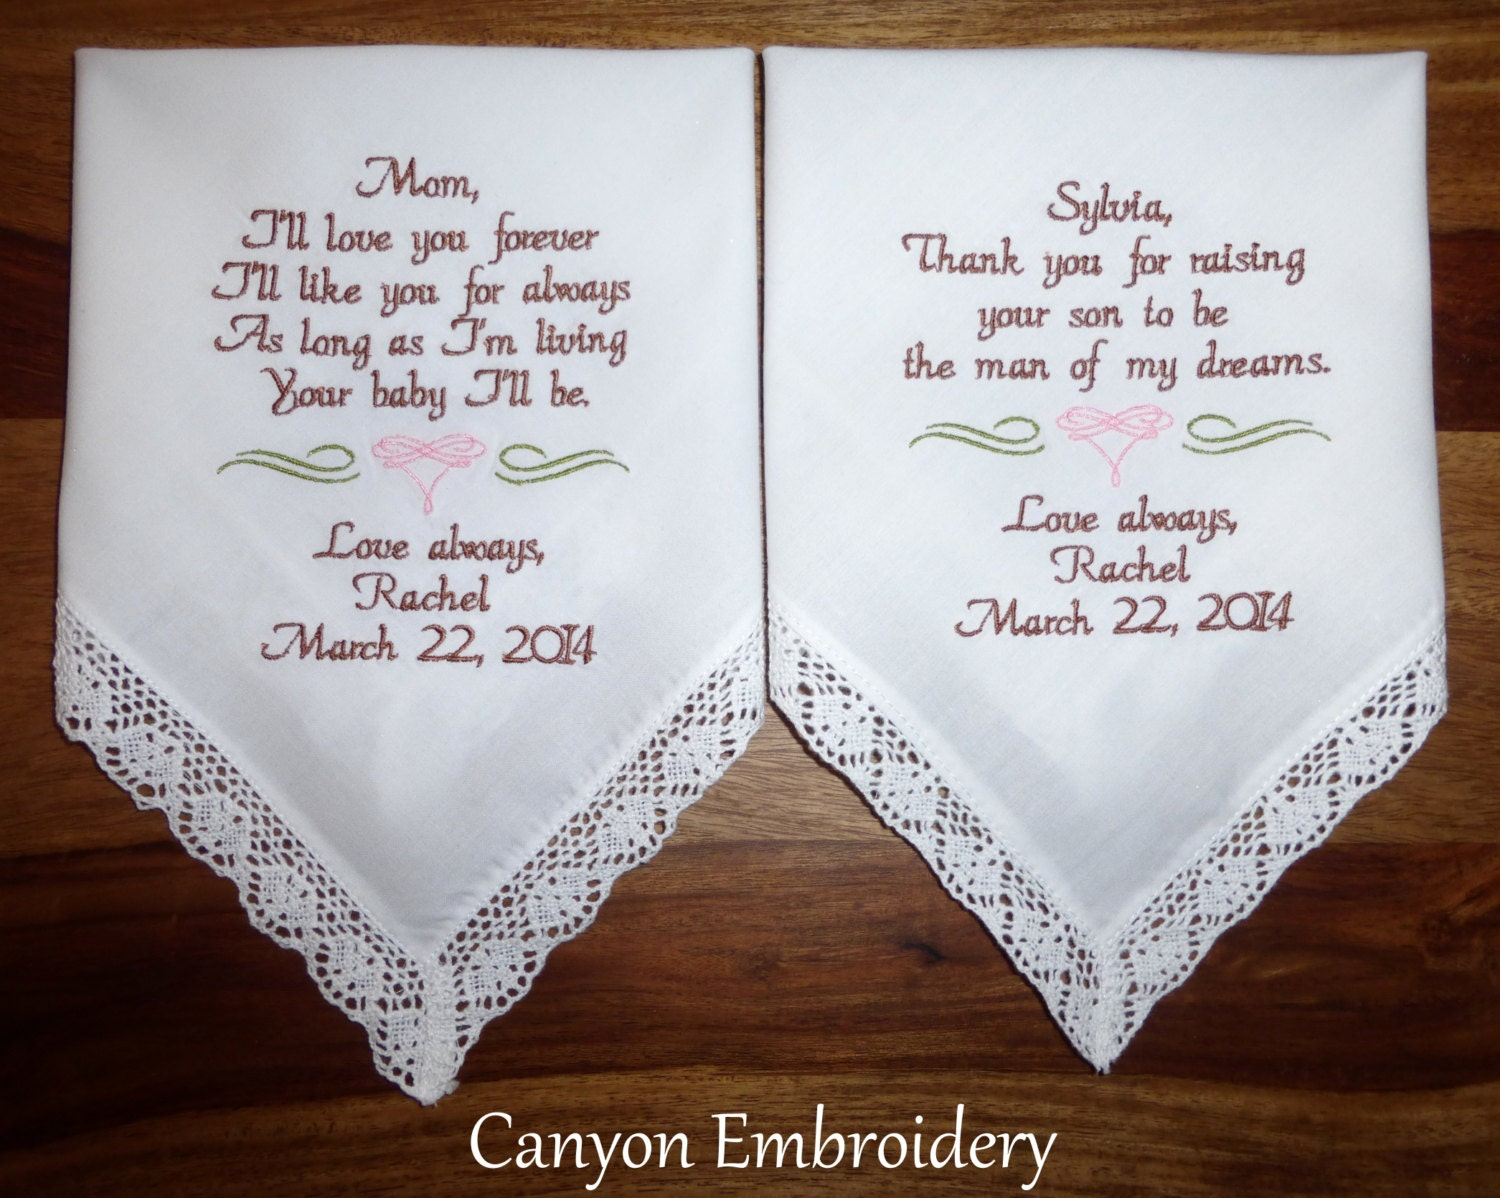 Wedding Gifts For Future Mother In Law : Wedding Present for Mom Future Mother in-law Embroidered